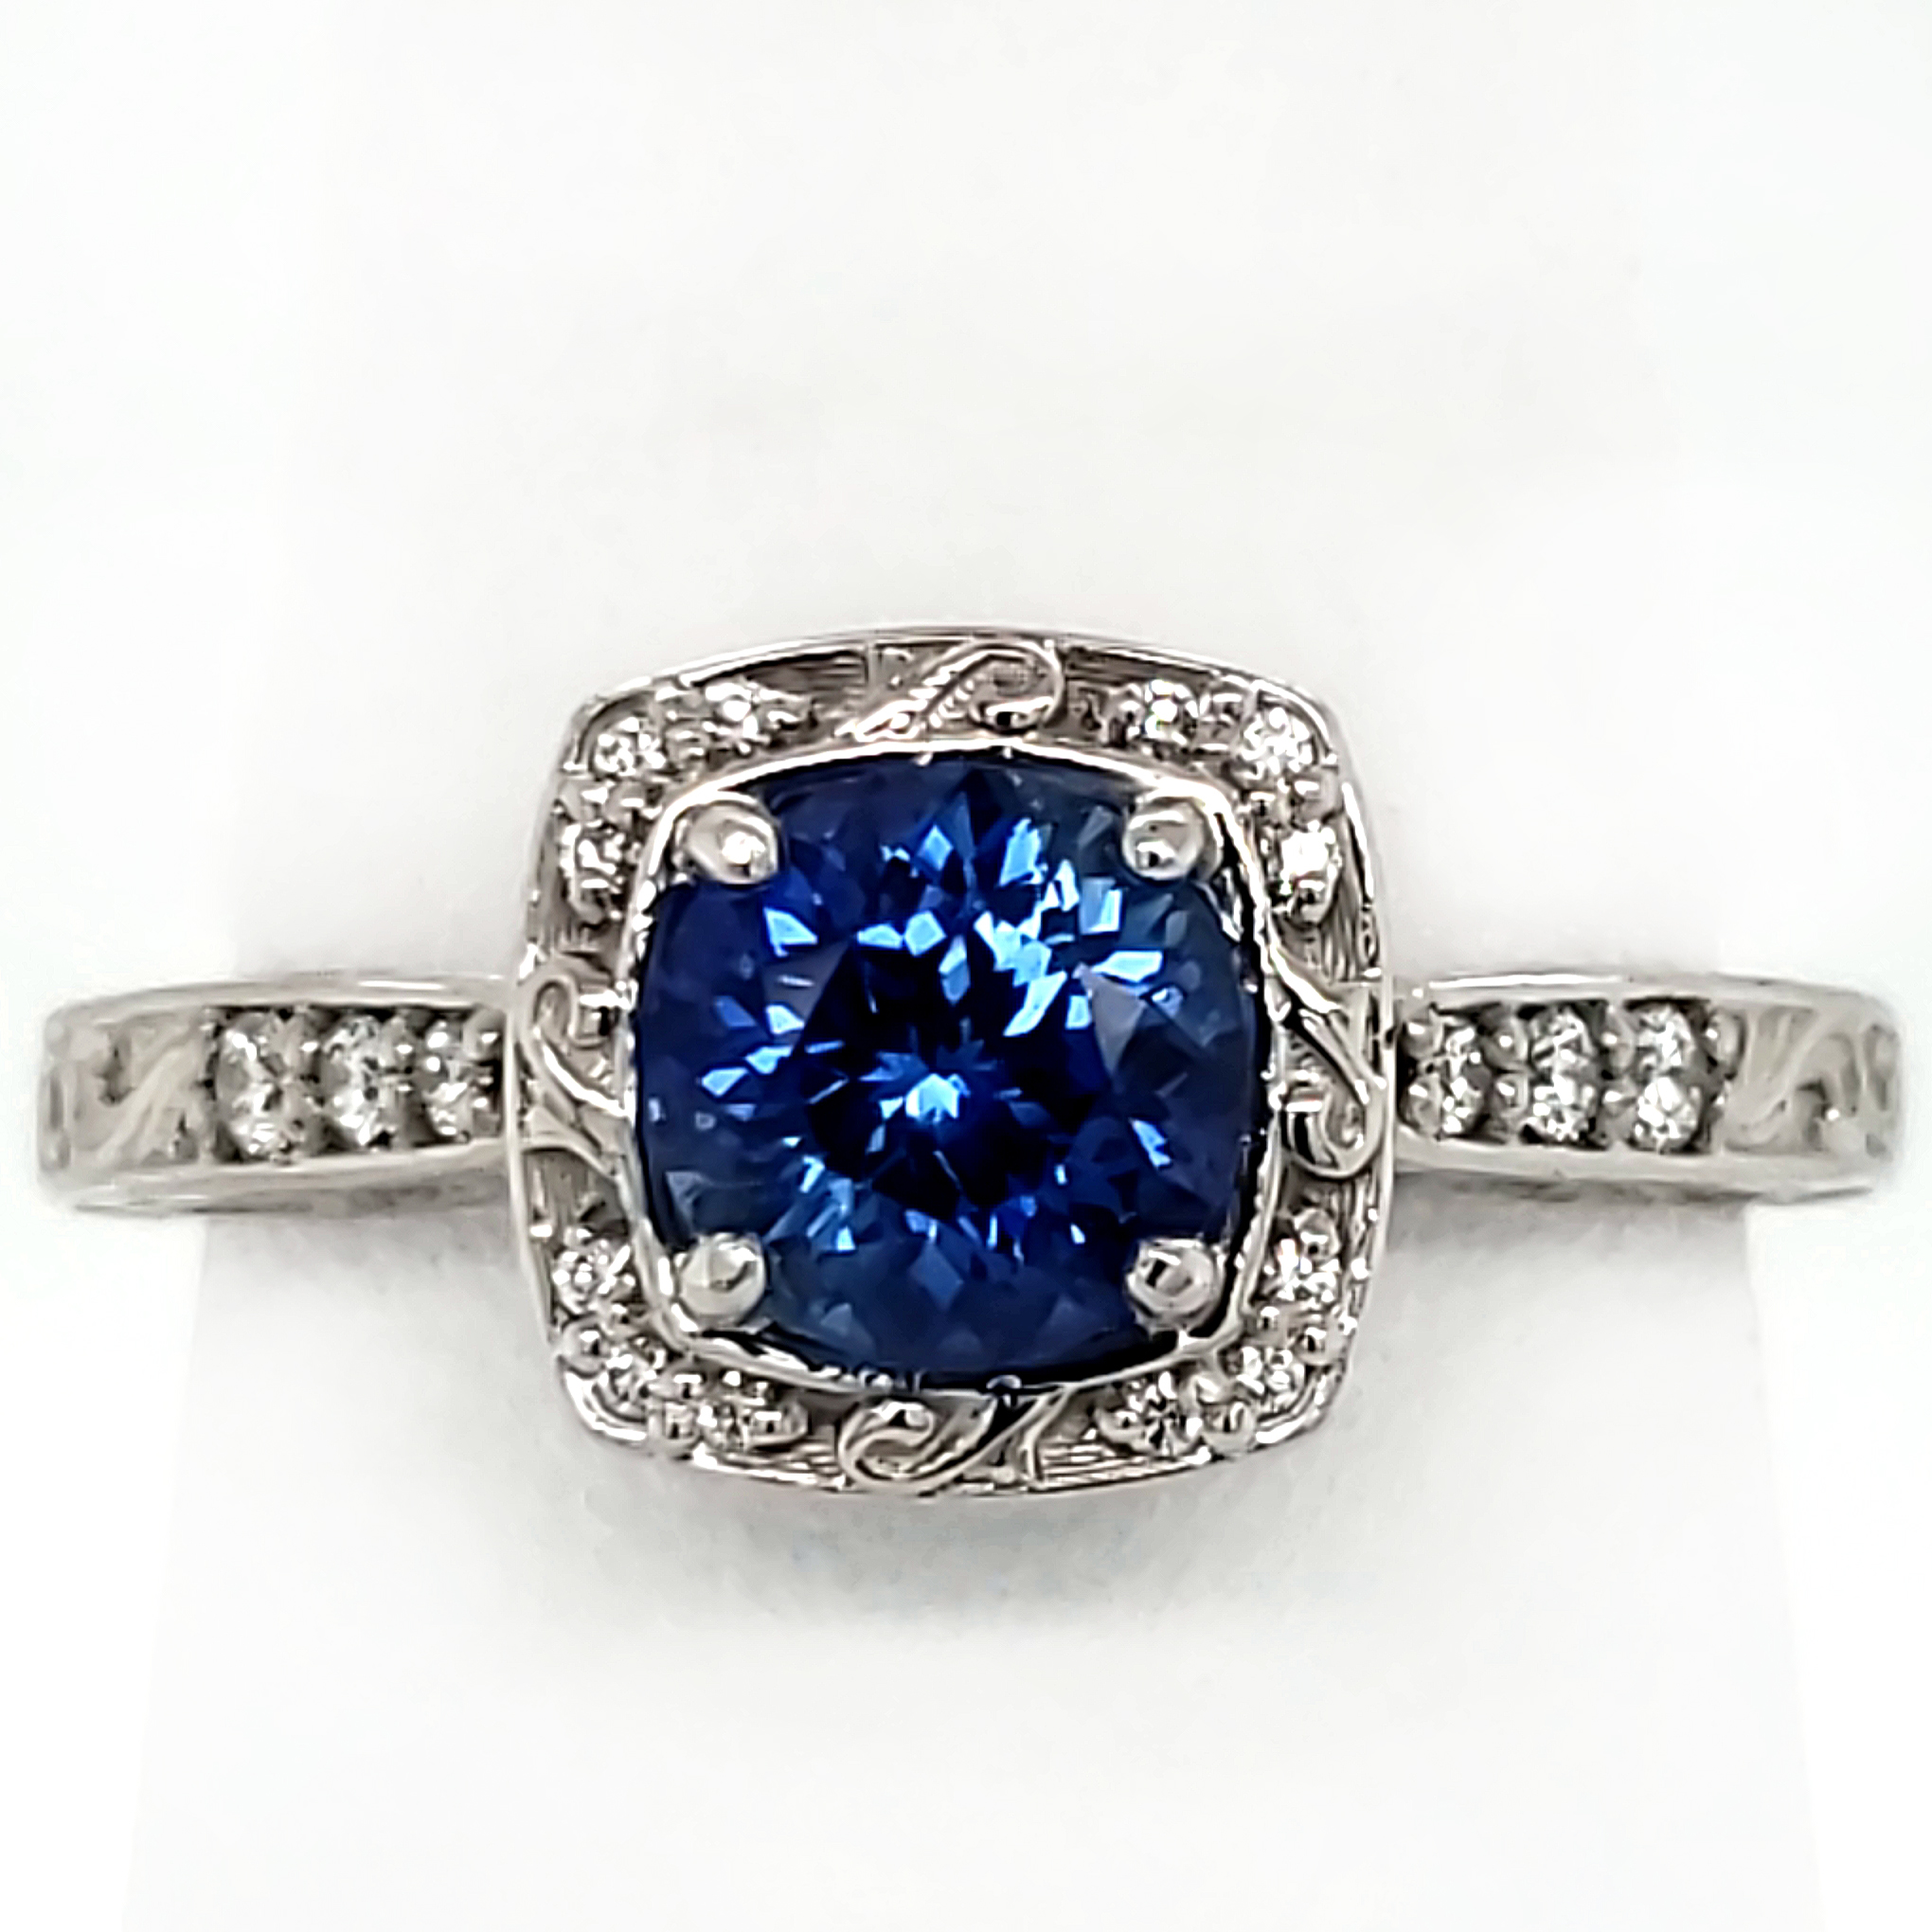 1.05 ct. Blue Sapphire and Platinum Ring